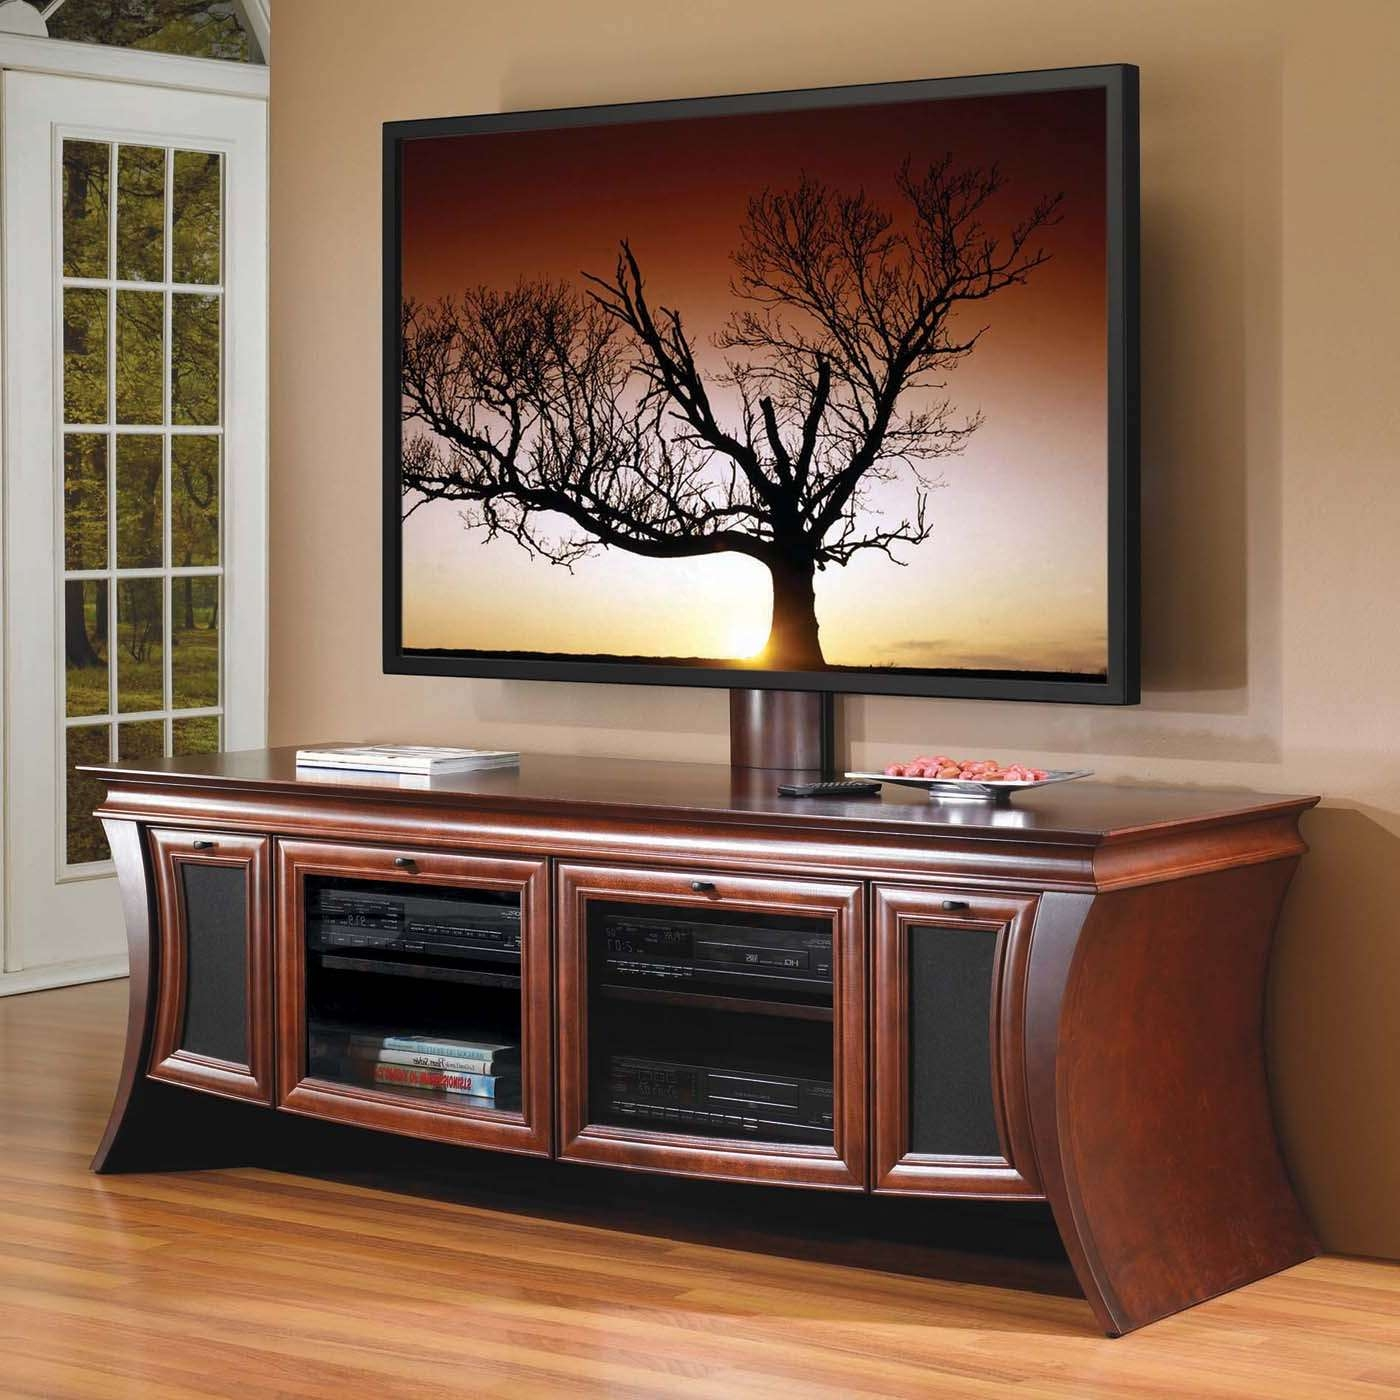 Luxurious Tv Stand With Teak Wood Materials Also Curves Side Intended For Wood Tv Stands With Glass Top (View 9 of 15)